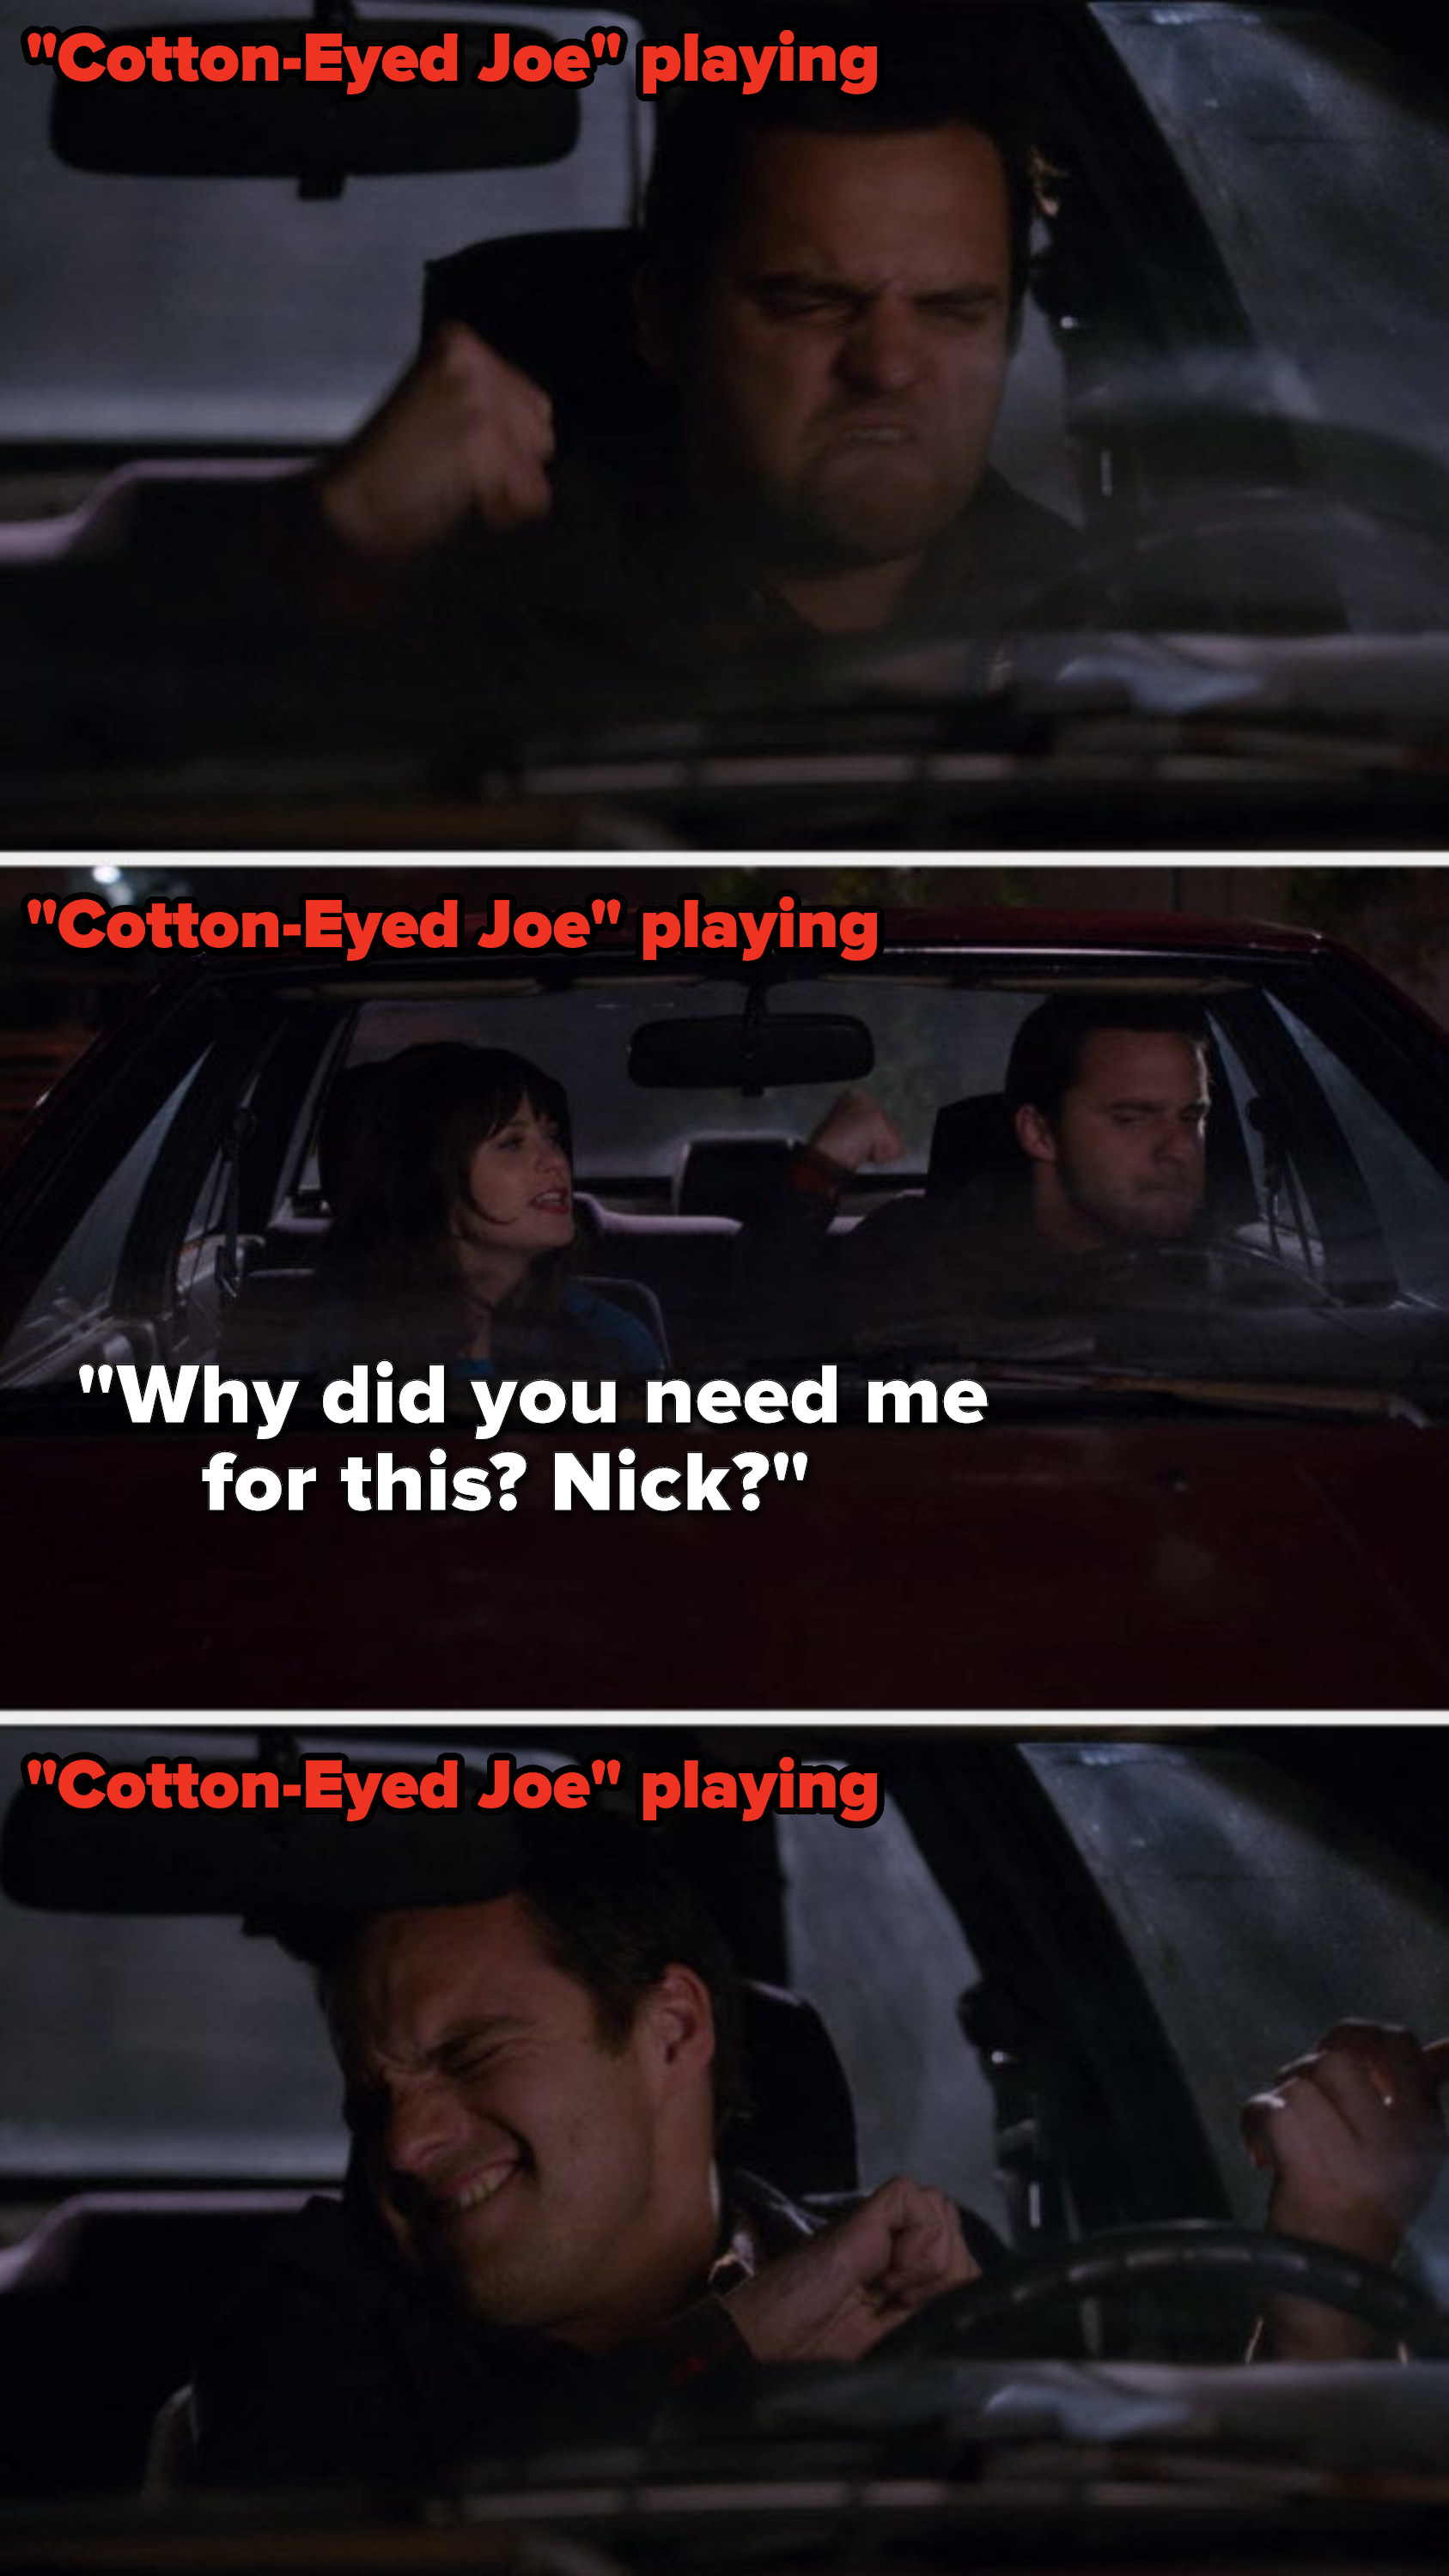 In a car, Nick fist bumps and mimes the fiddle in Cotton-Eyed Joe, and Jess says, Why did you need me for this, Nick